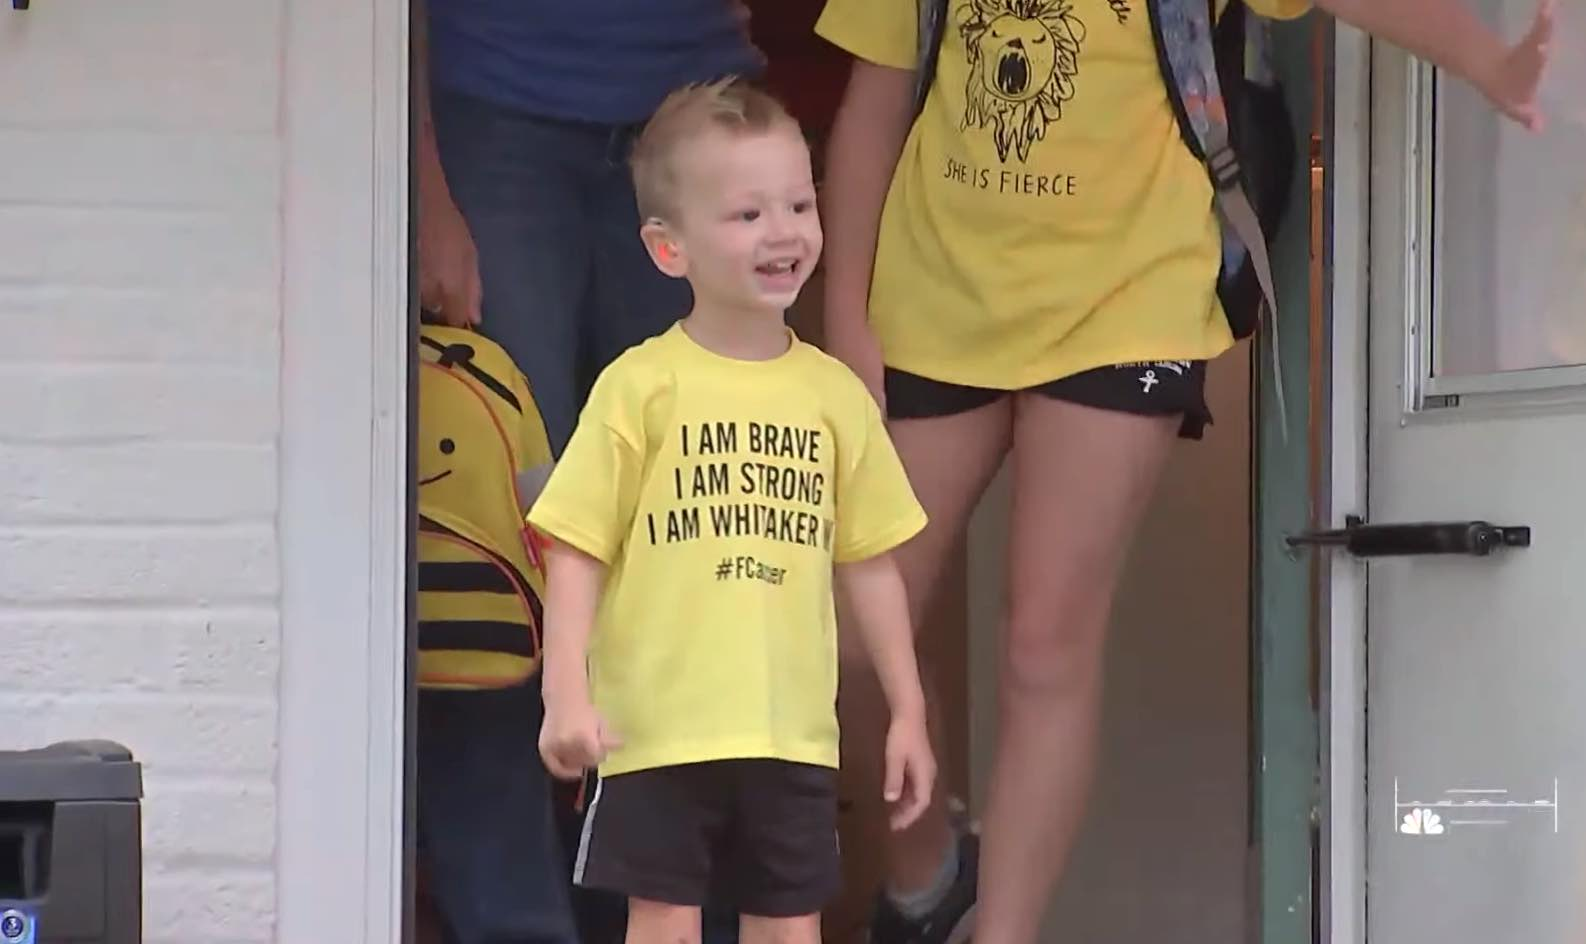 Hundreds of Strangers Rally One Morning to Grant 4-Year-old Cancer Survivor's Birthday Wish for '100 Bumblebees'